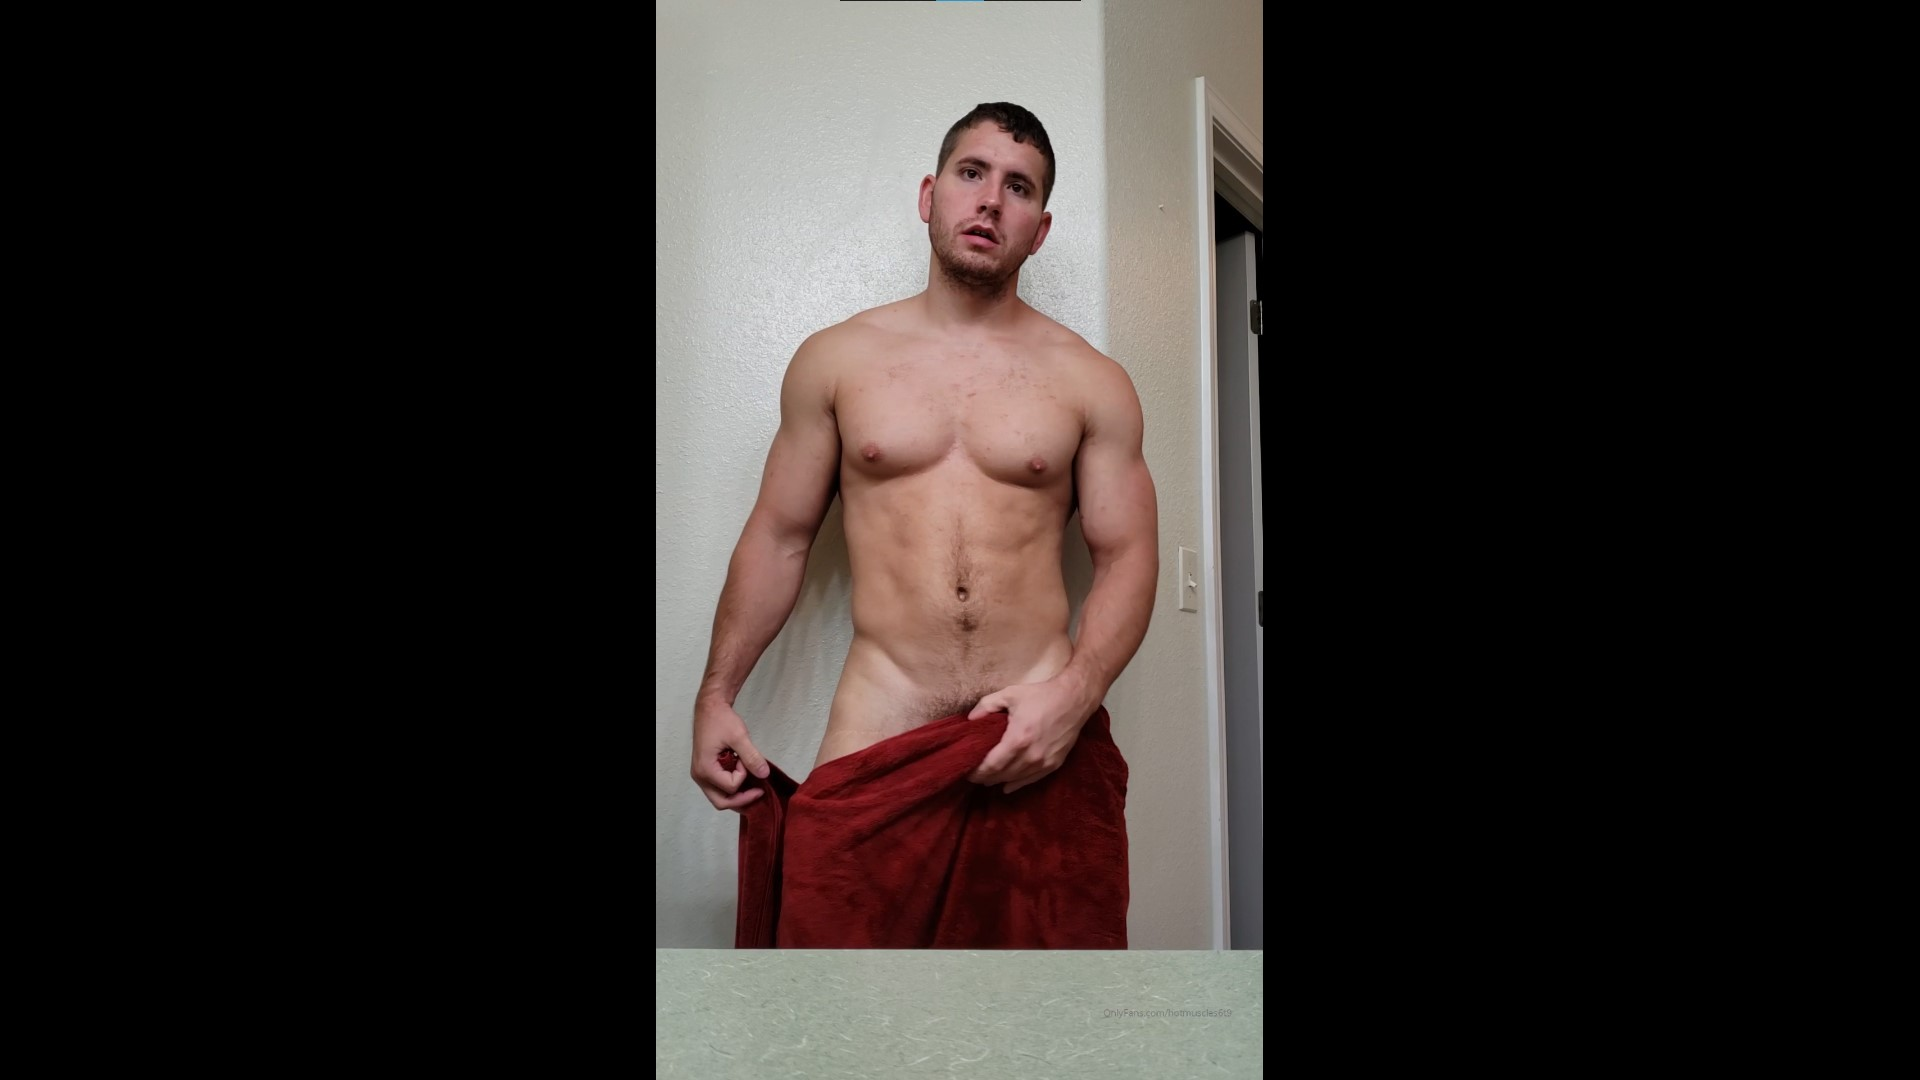 Showing off my muscles and cock after a shower - Hotmuscles6t9